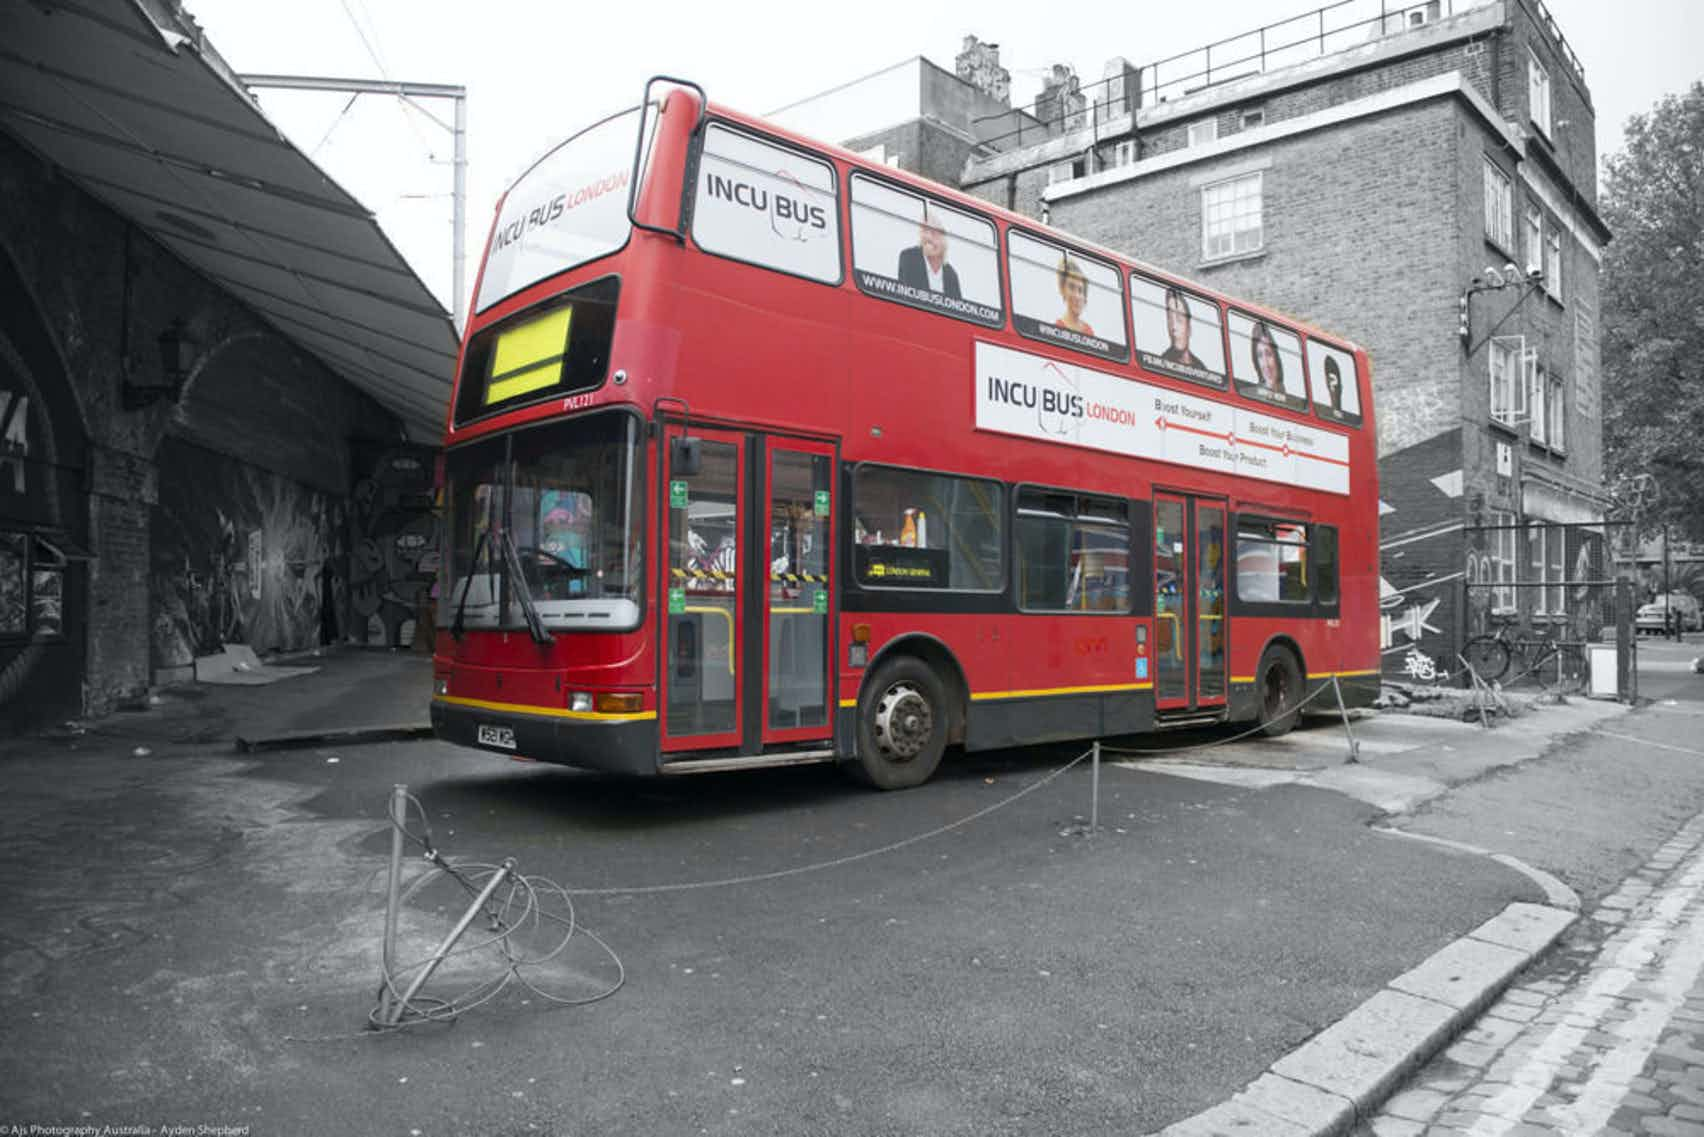 Office on Wheels!, IncuBus London